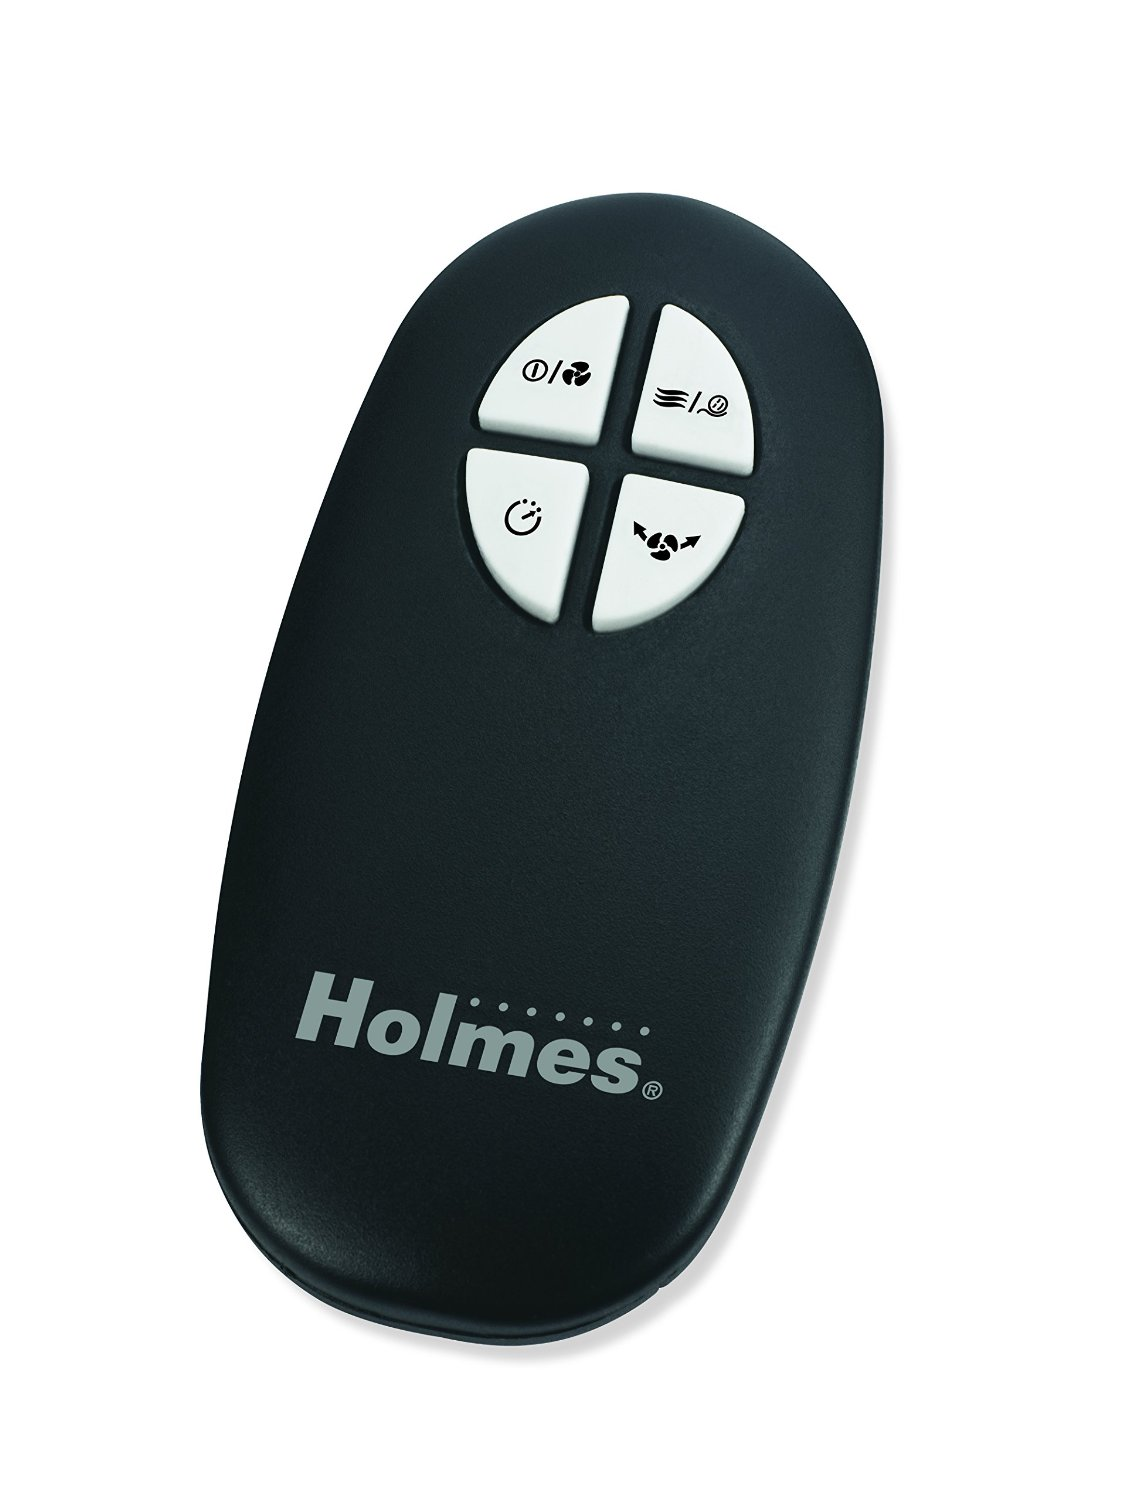 Holmes HT38RB-U Oscillating Tower Fan Remote